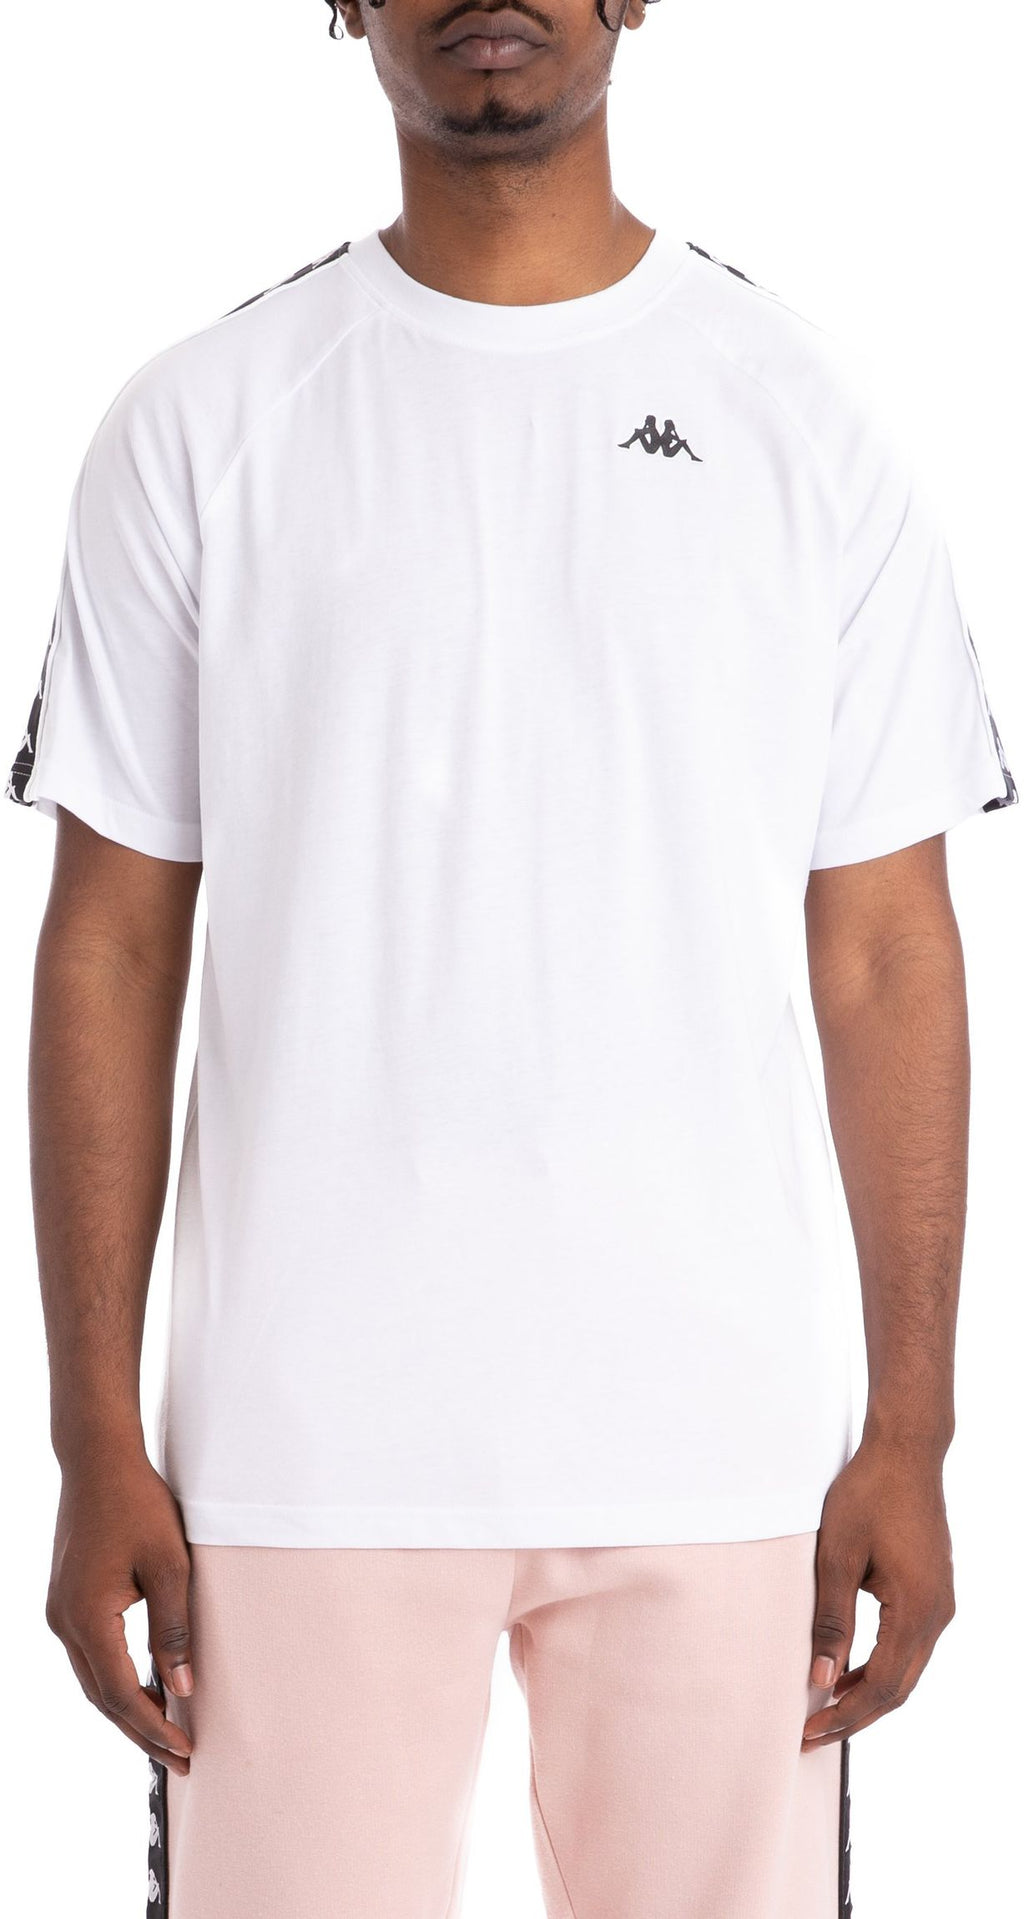 Kappa Coen T-Shirt White/Black